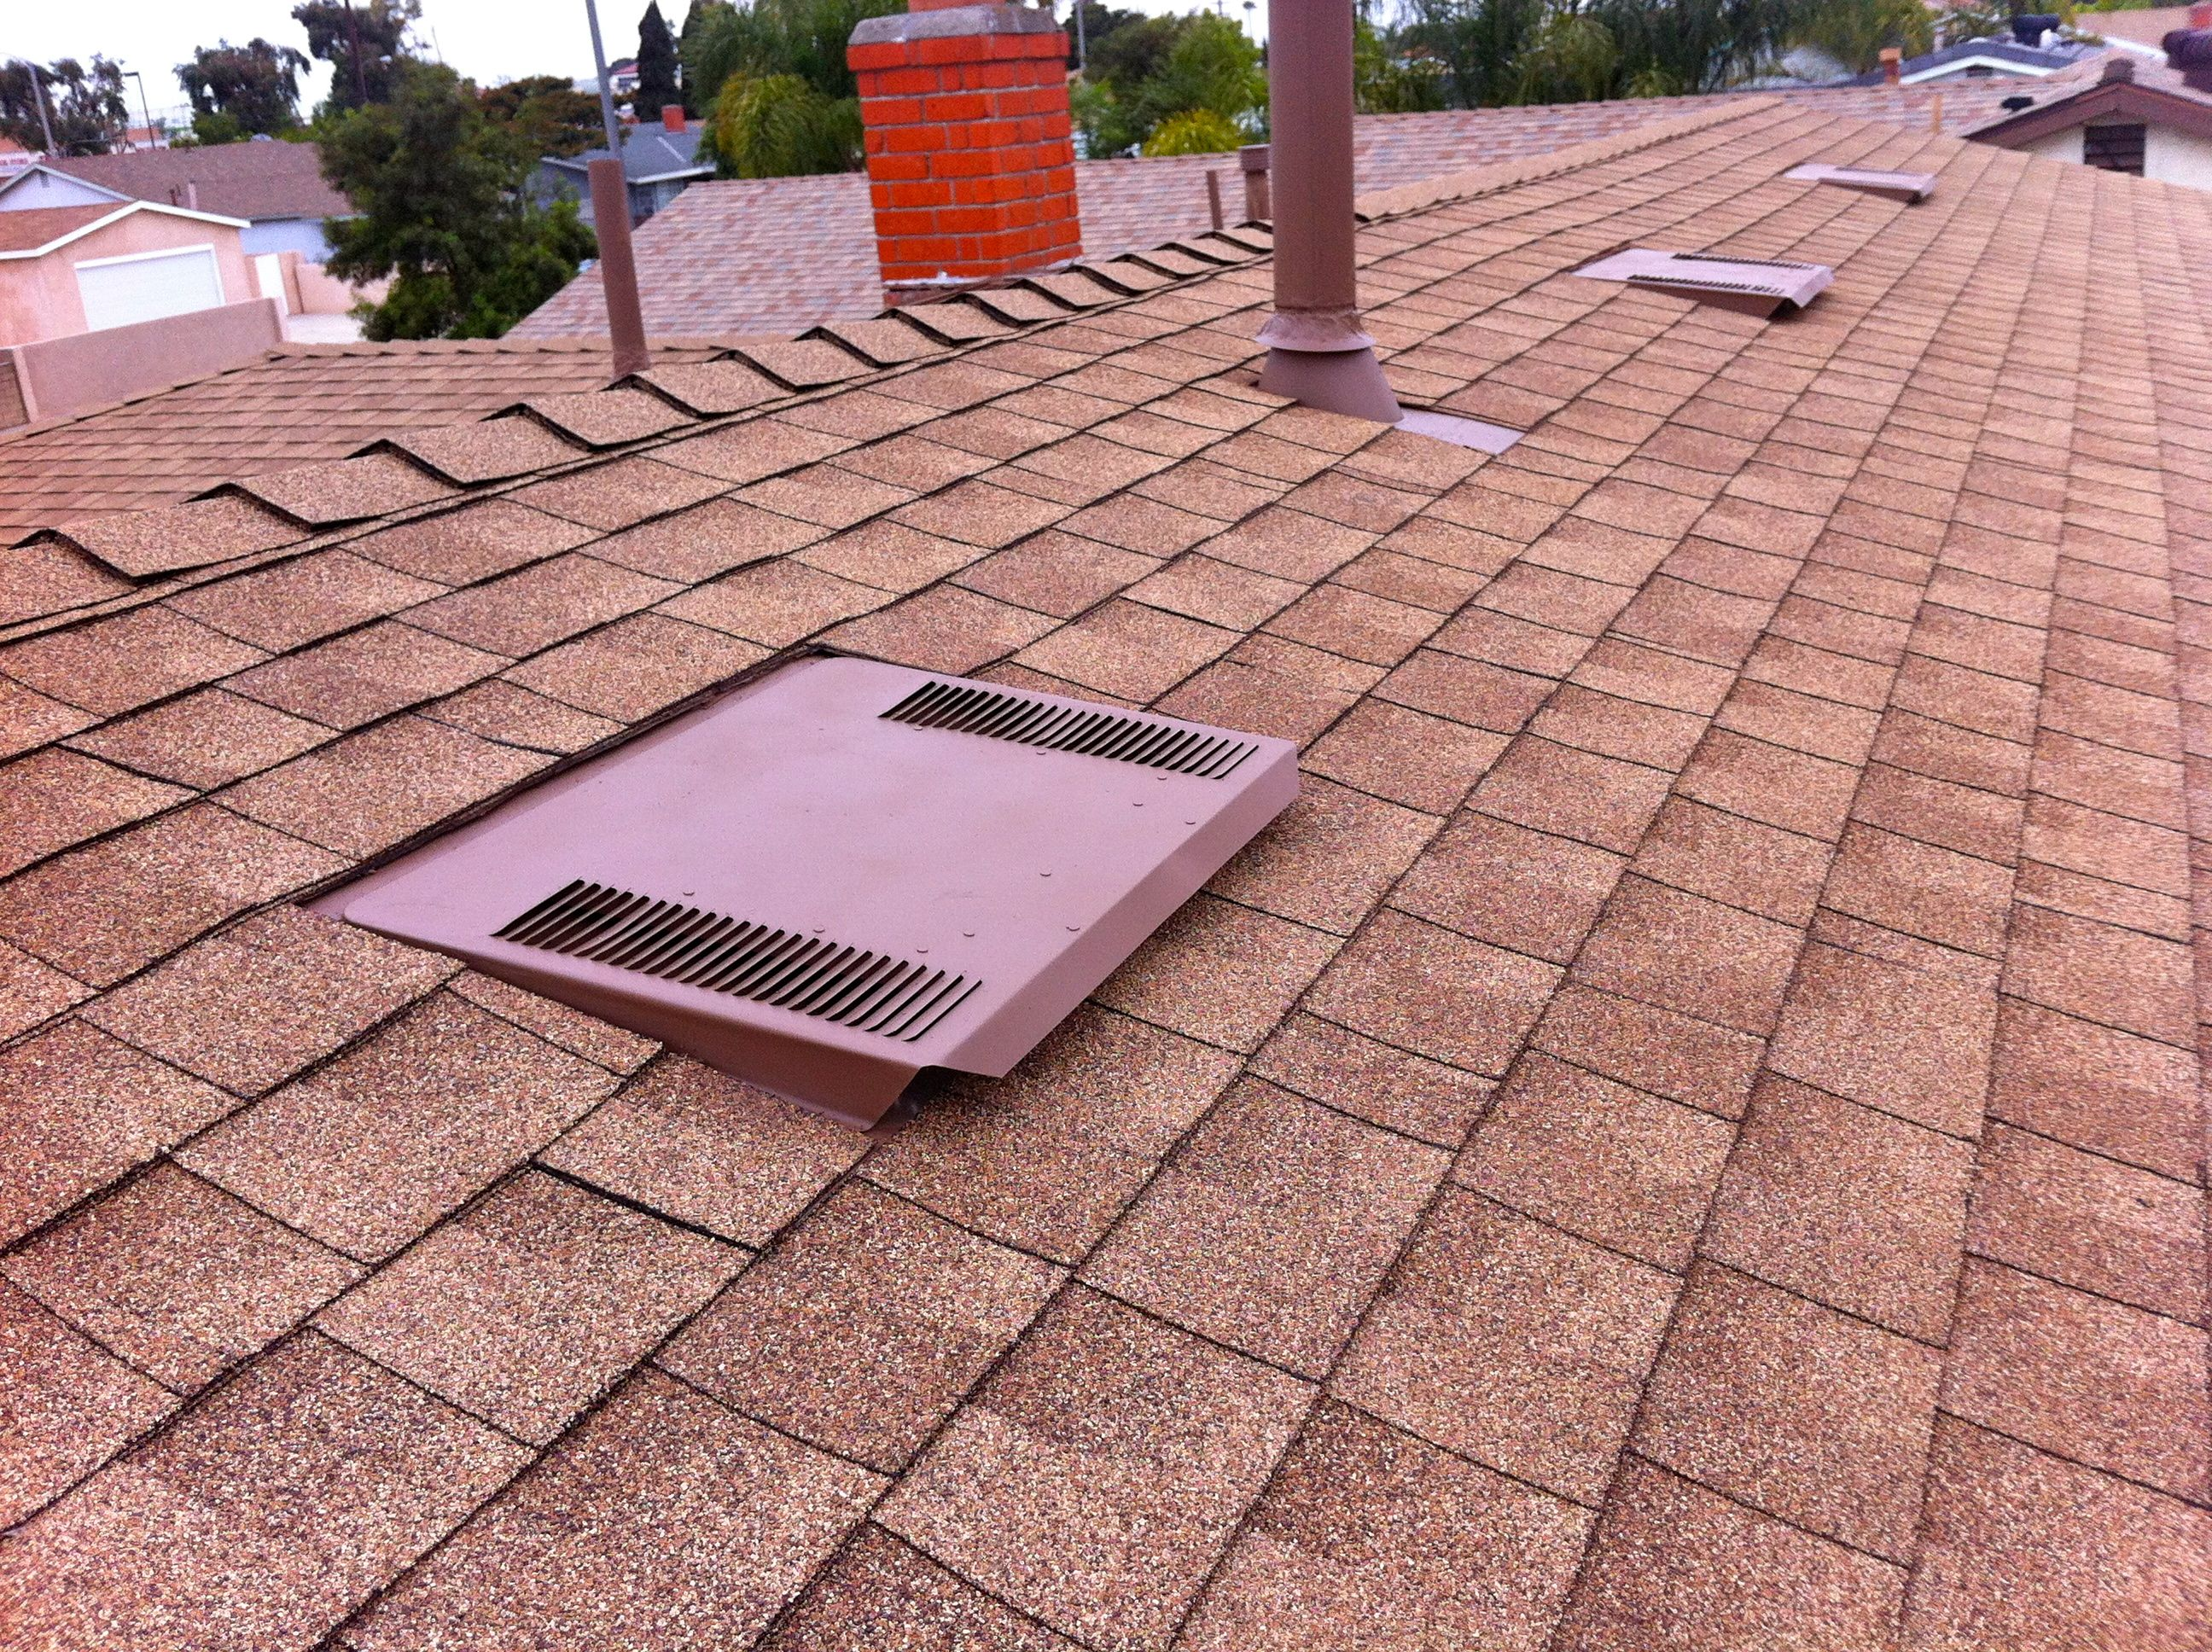 Www.chandlersroofing.com Low Profile Ou0027 Hagin Vents Installed With This GAF  Timberline